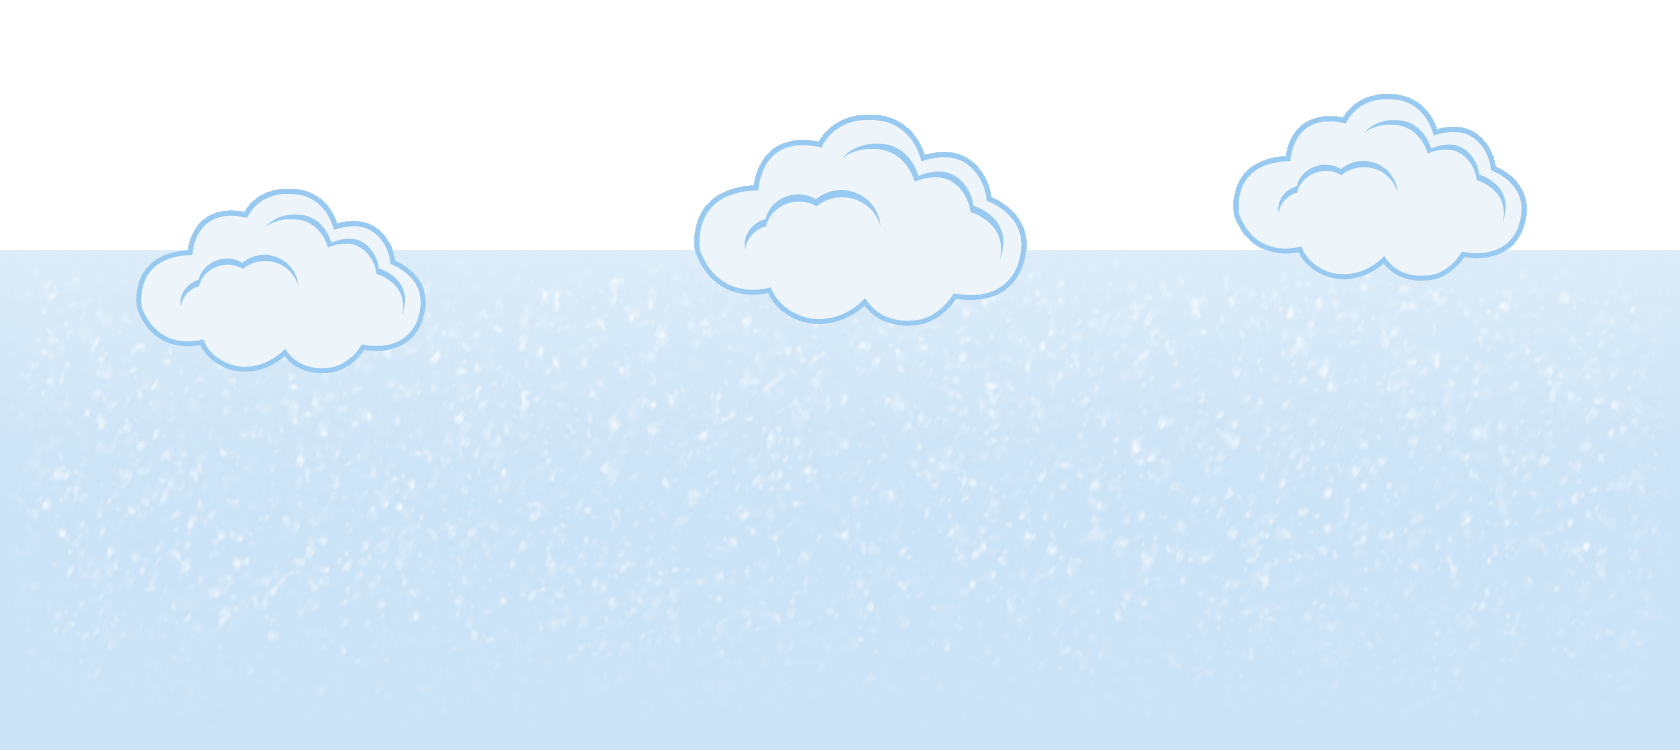 Snow Falling from the Sky Background